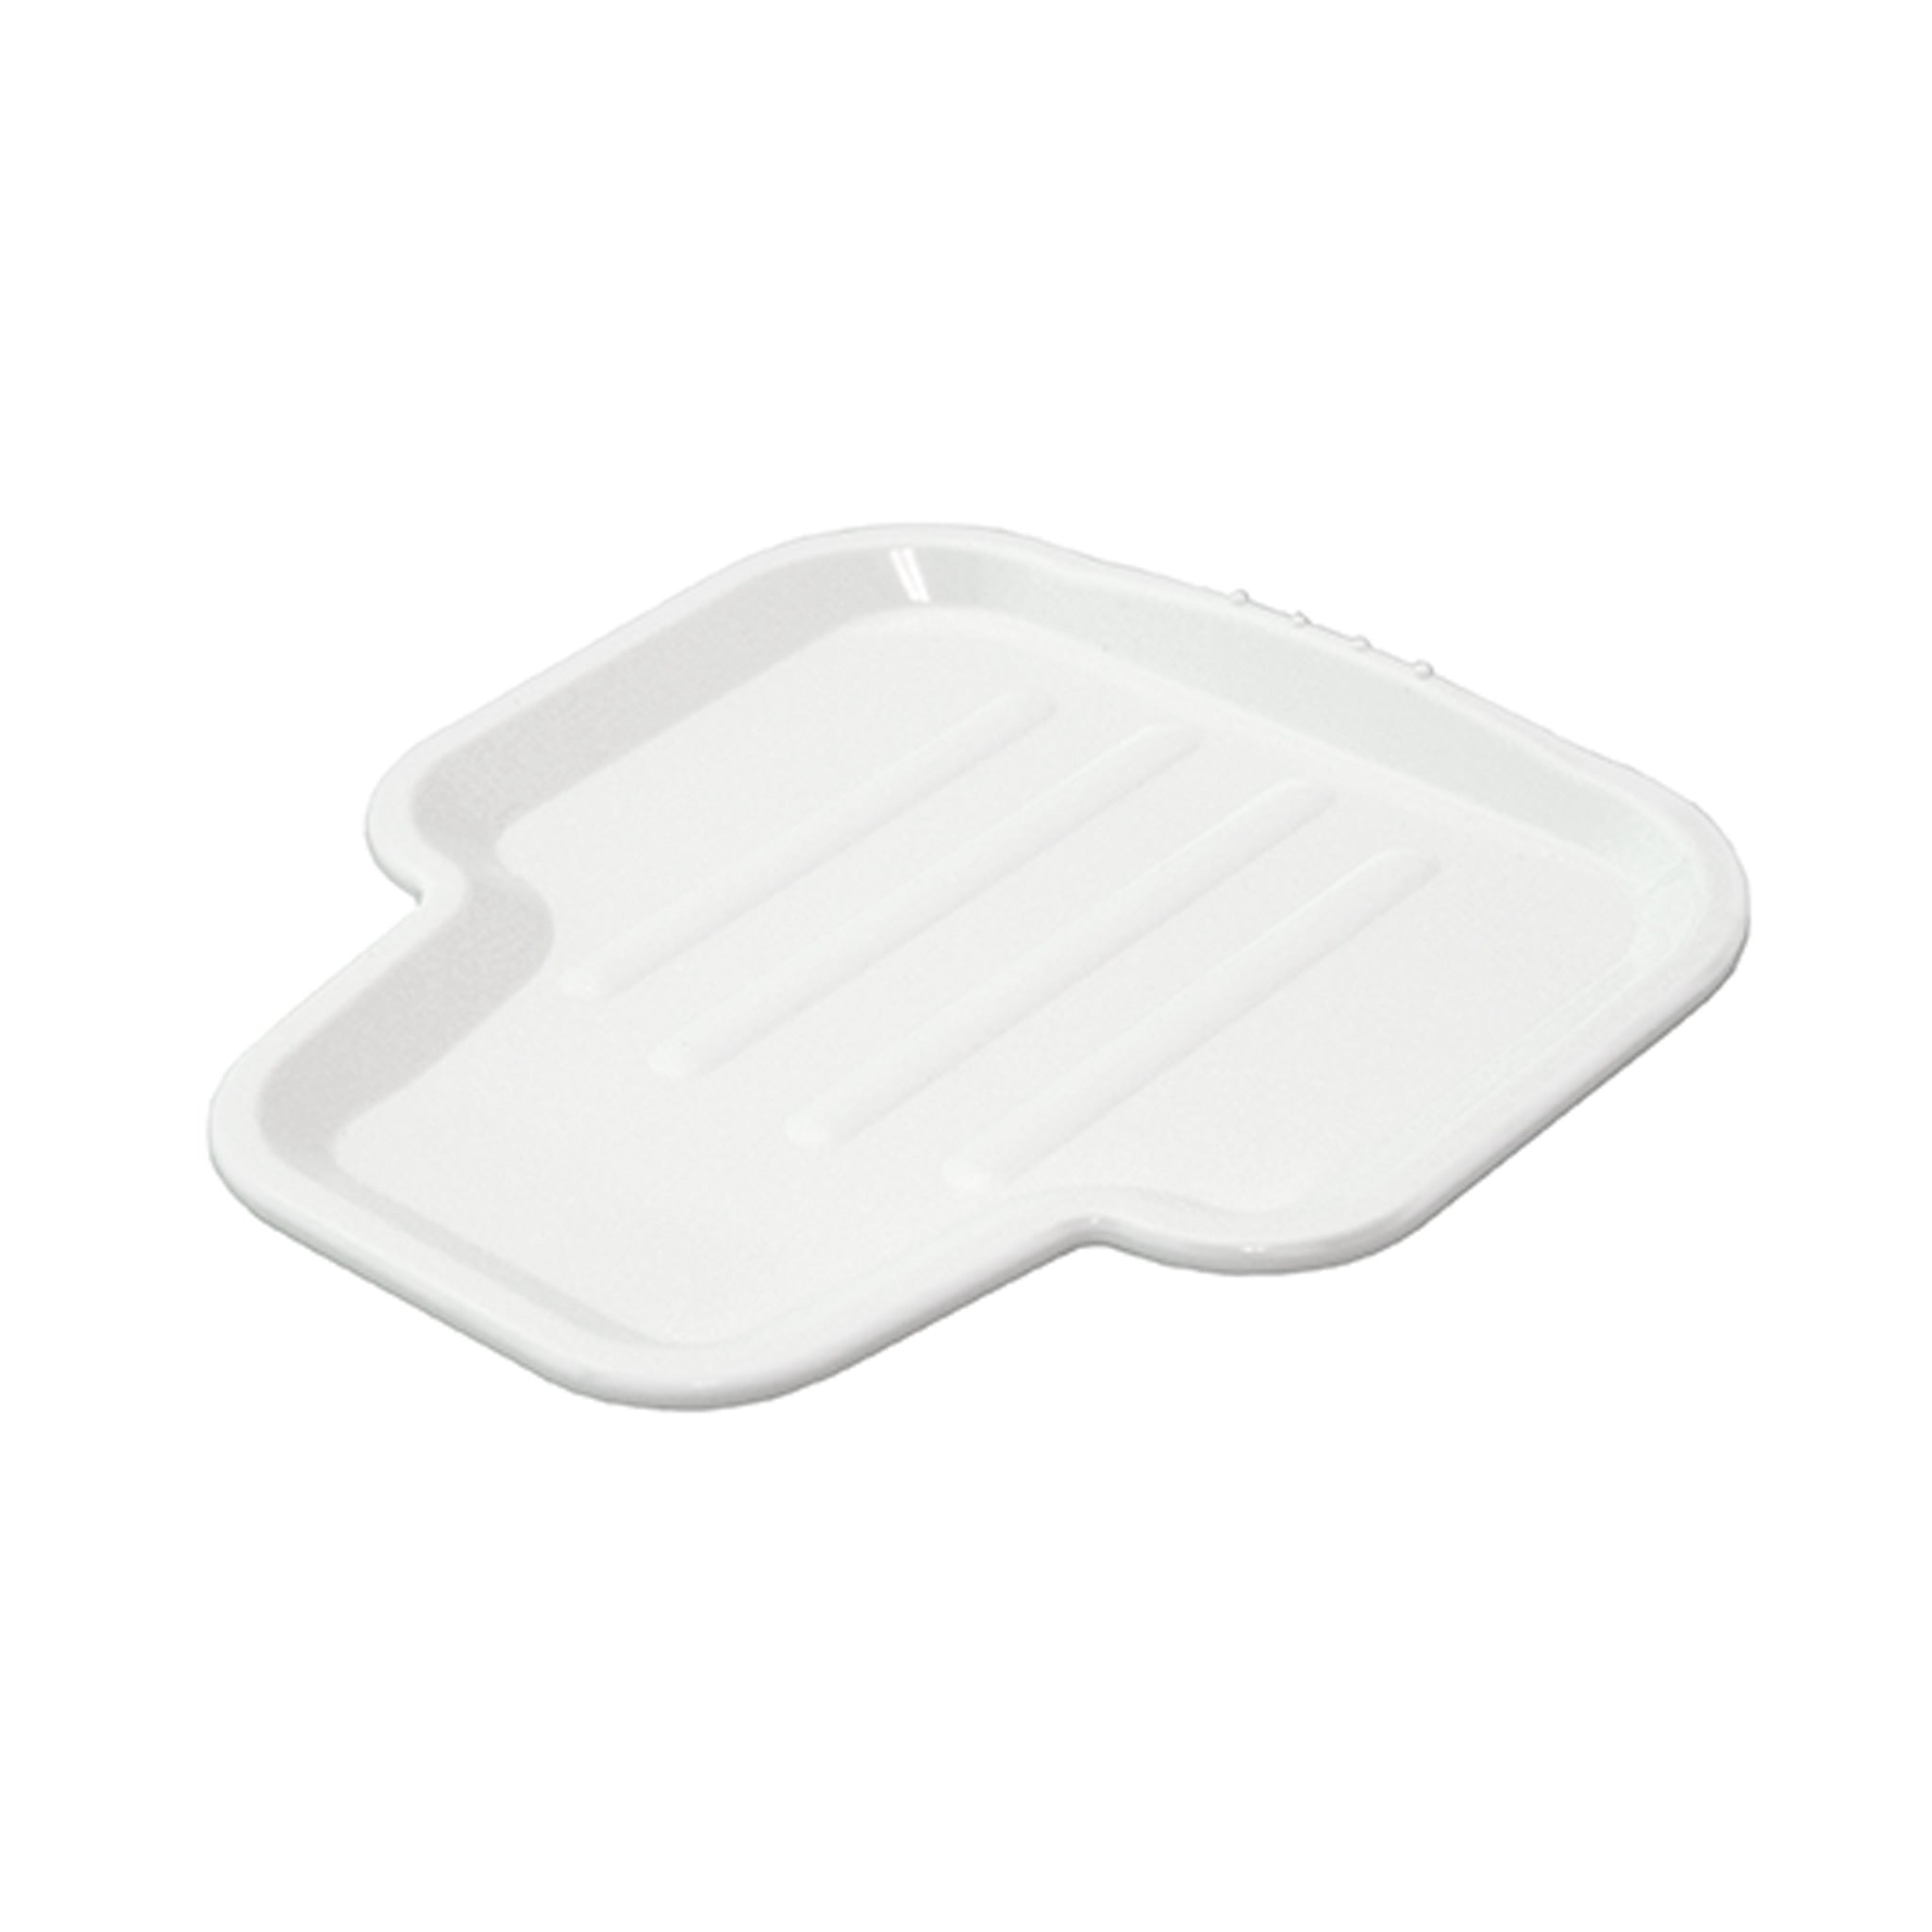 Drip Tray for Greenstar® Pro and Greenstar® Elite.